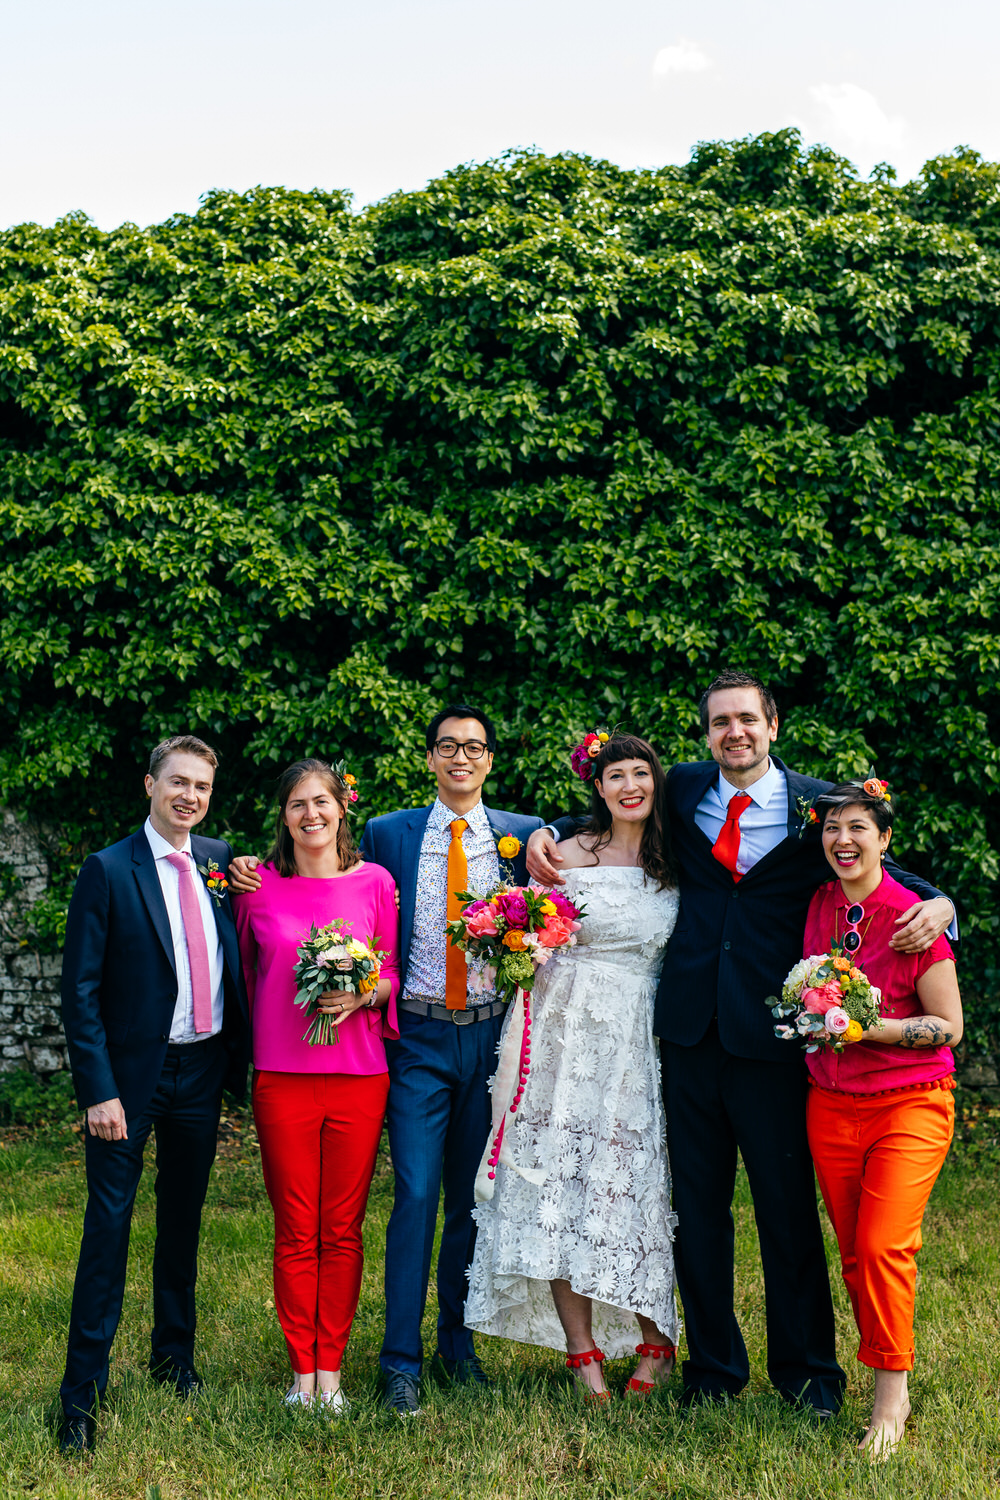 Bridesmaids Outfits Red Orange Trousers Ash Barton Estate Wedding Jordanna Marston Photography